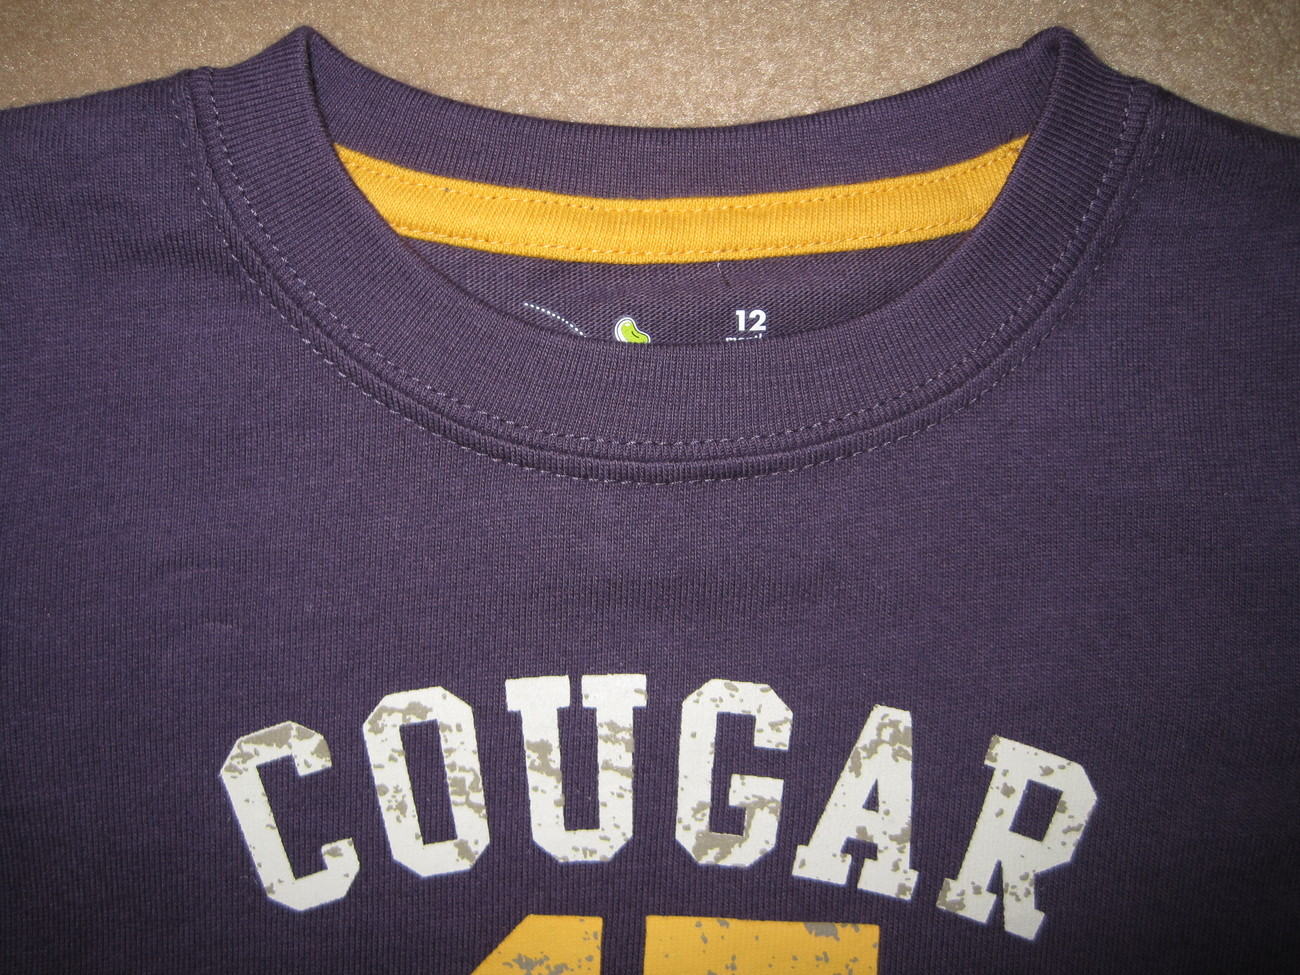 BOYS 12 MONTHS - Jumping Beans - Cougar League #47 Captain KNIT SHIRT